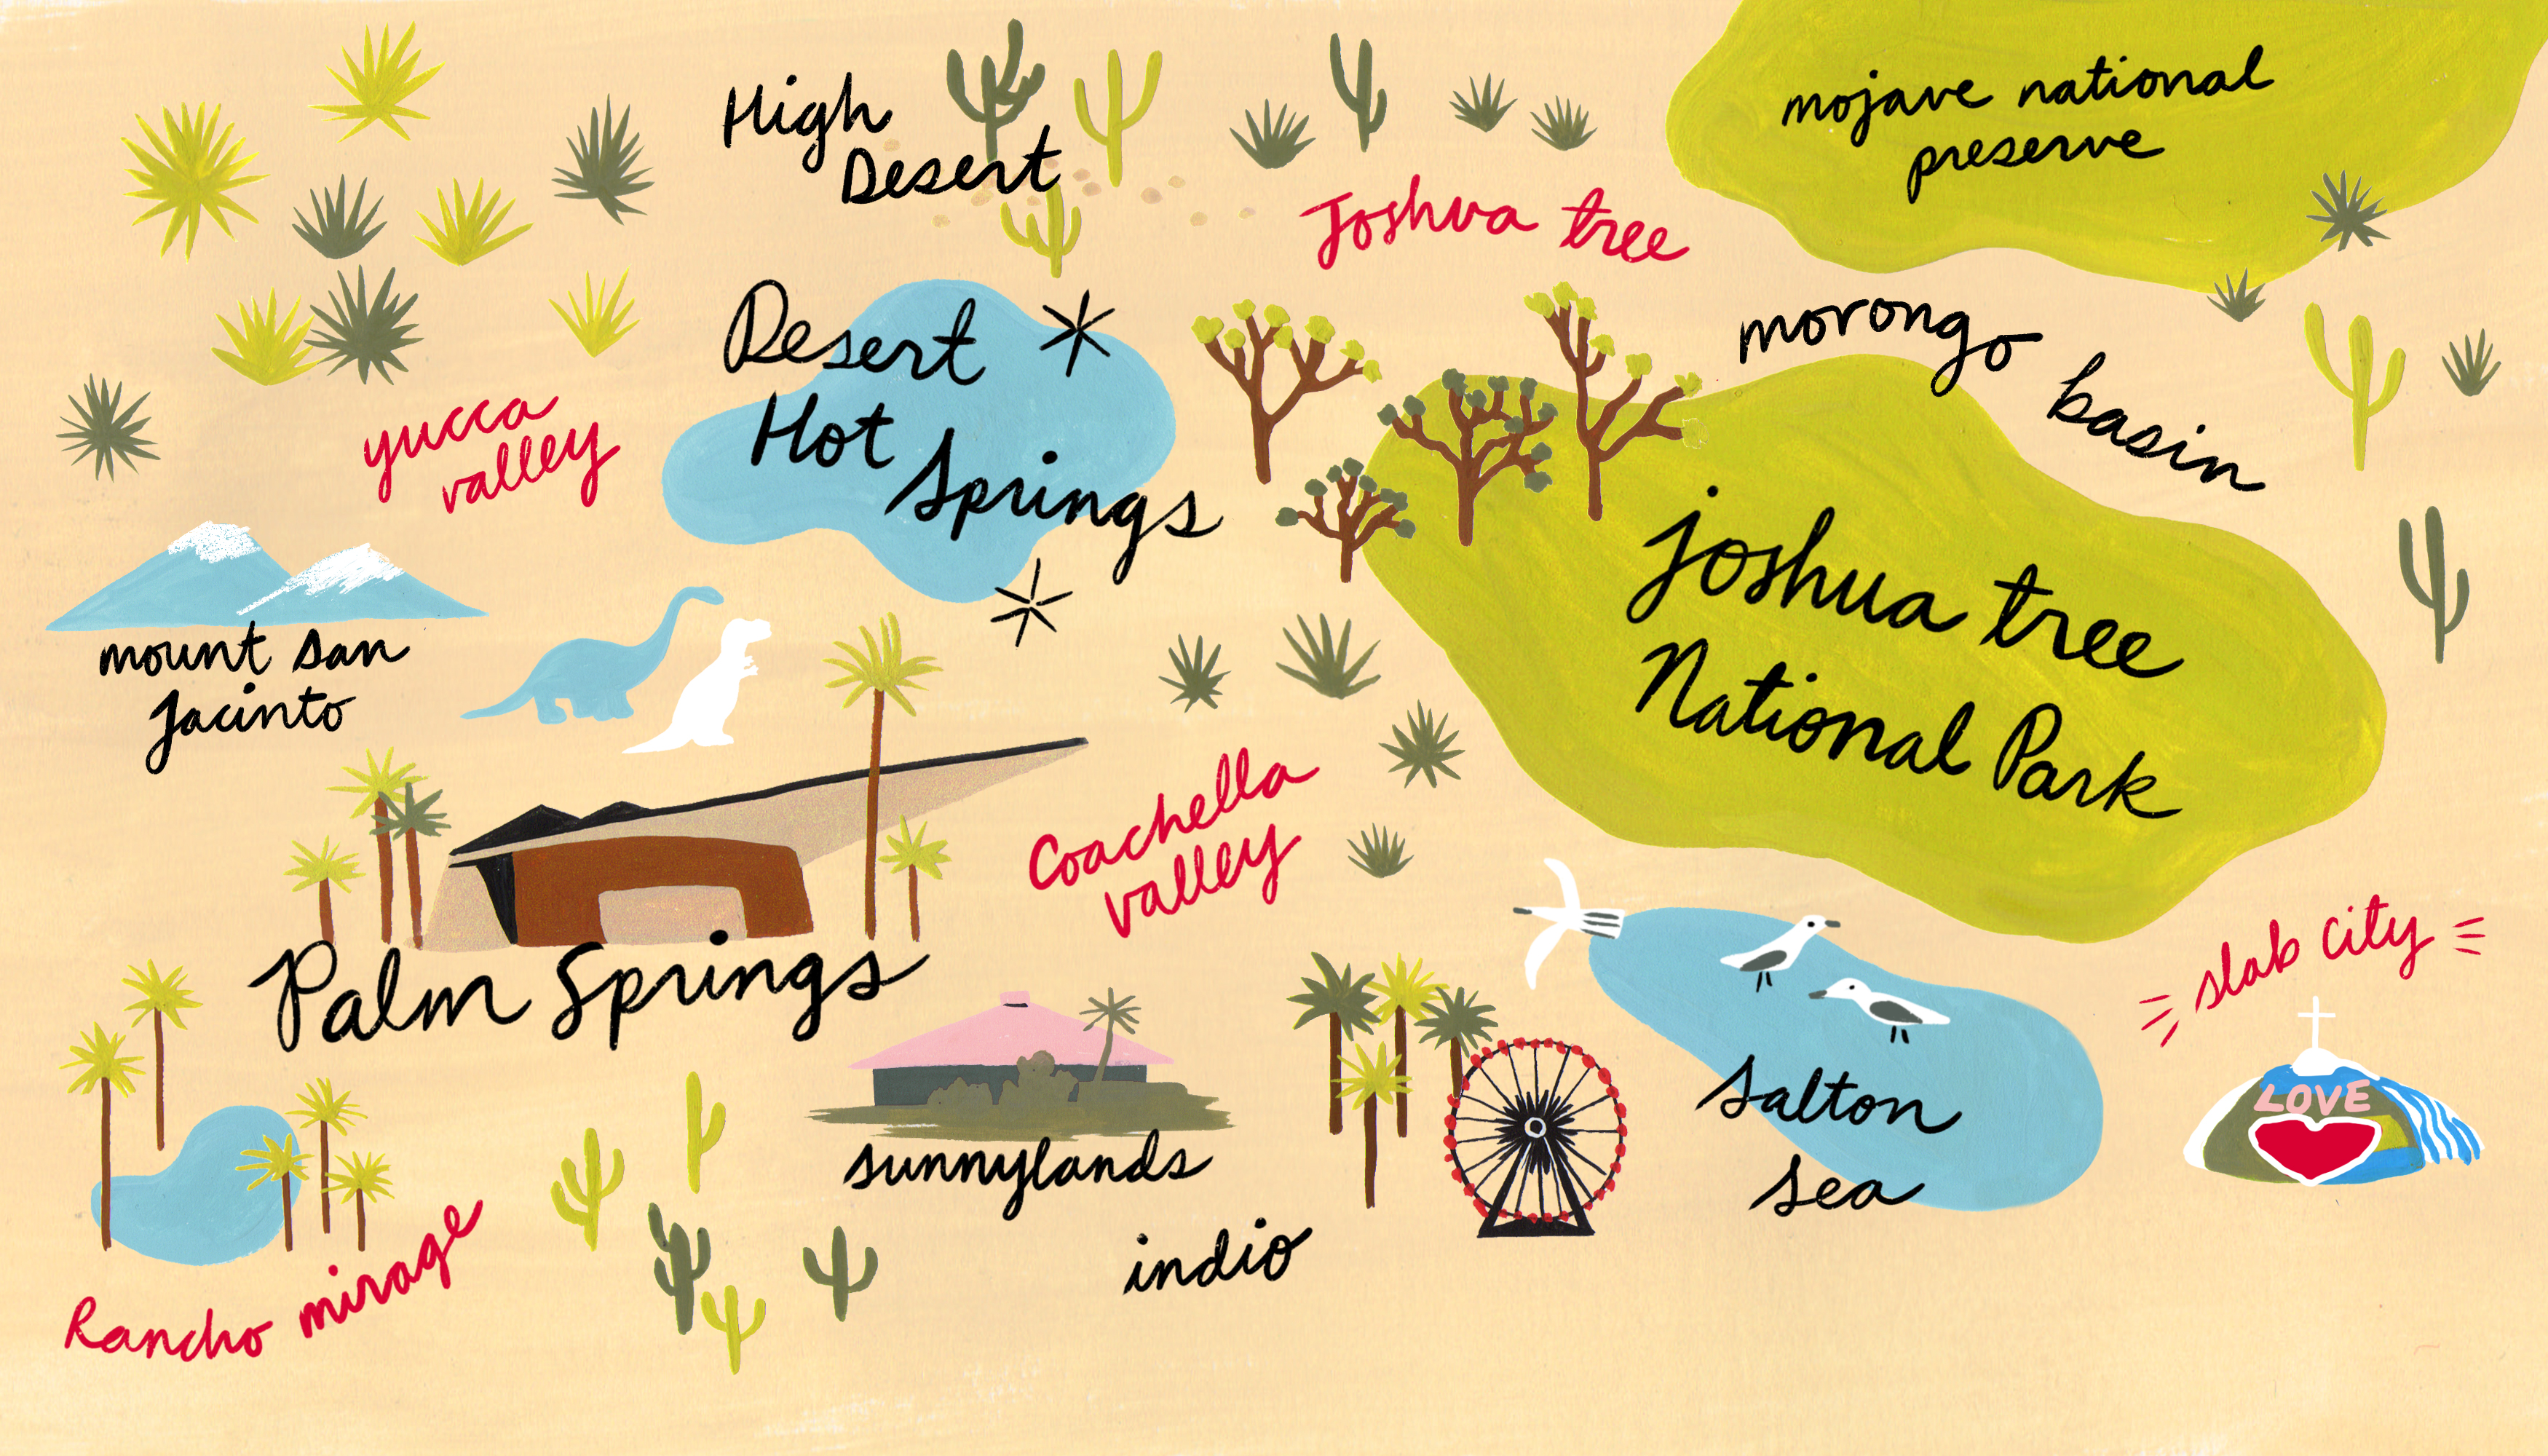 An illustration with the names of various places in the California desert written on it.